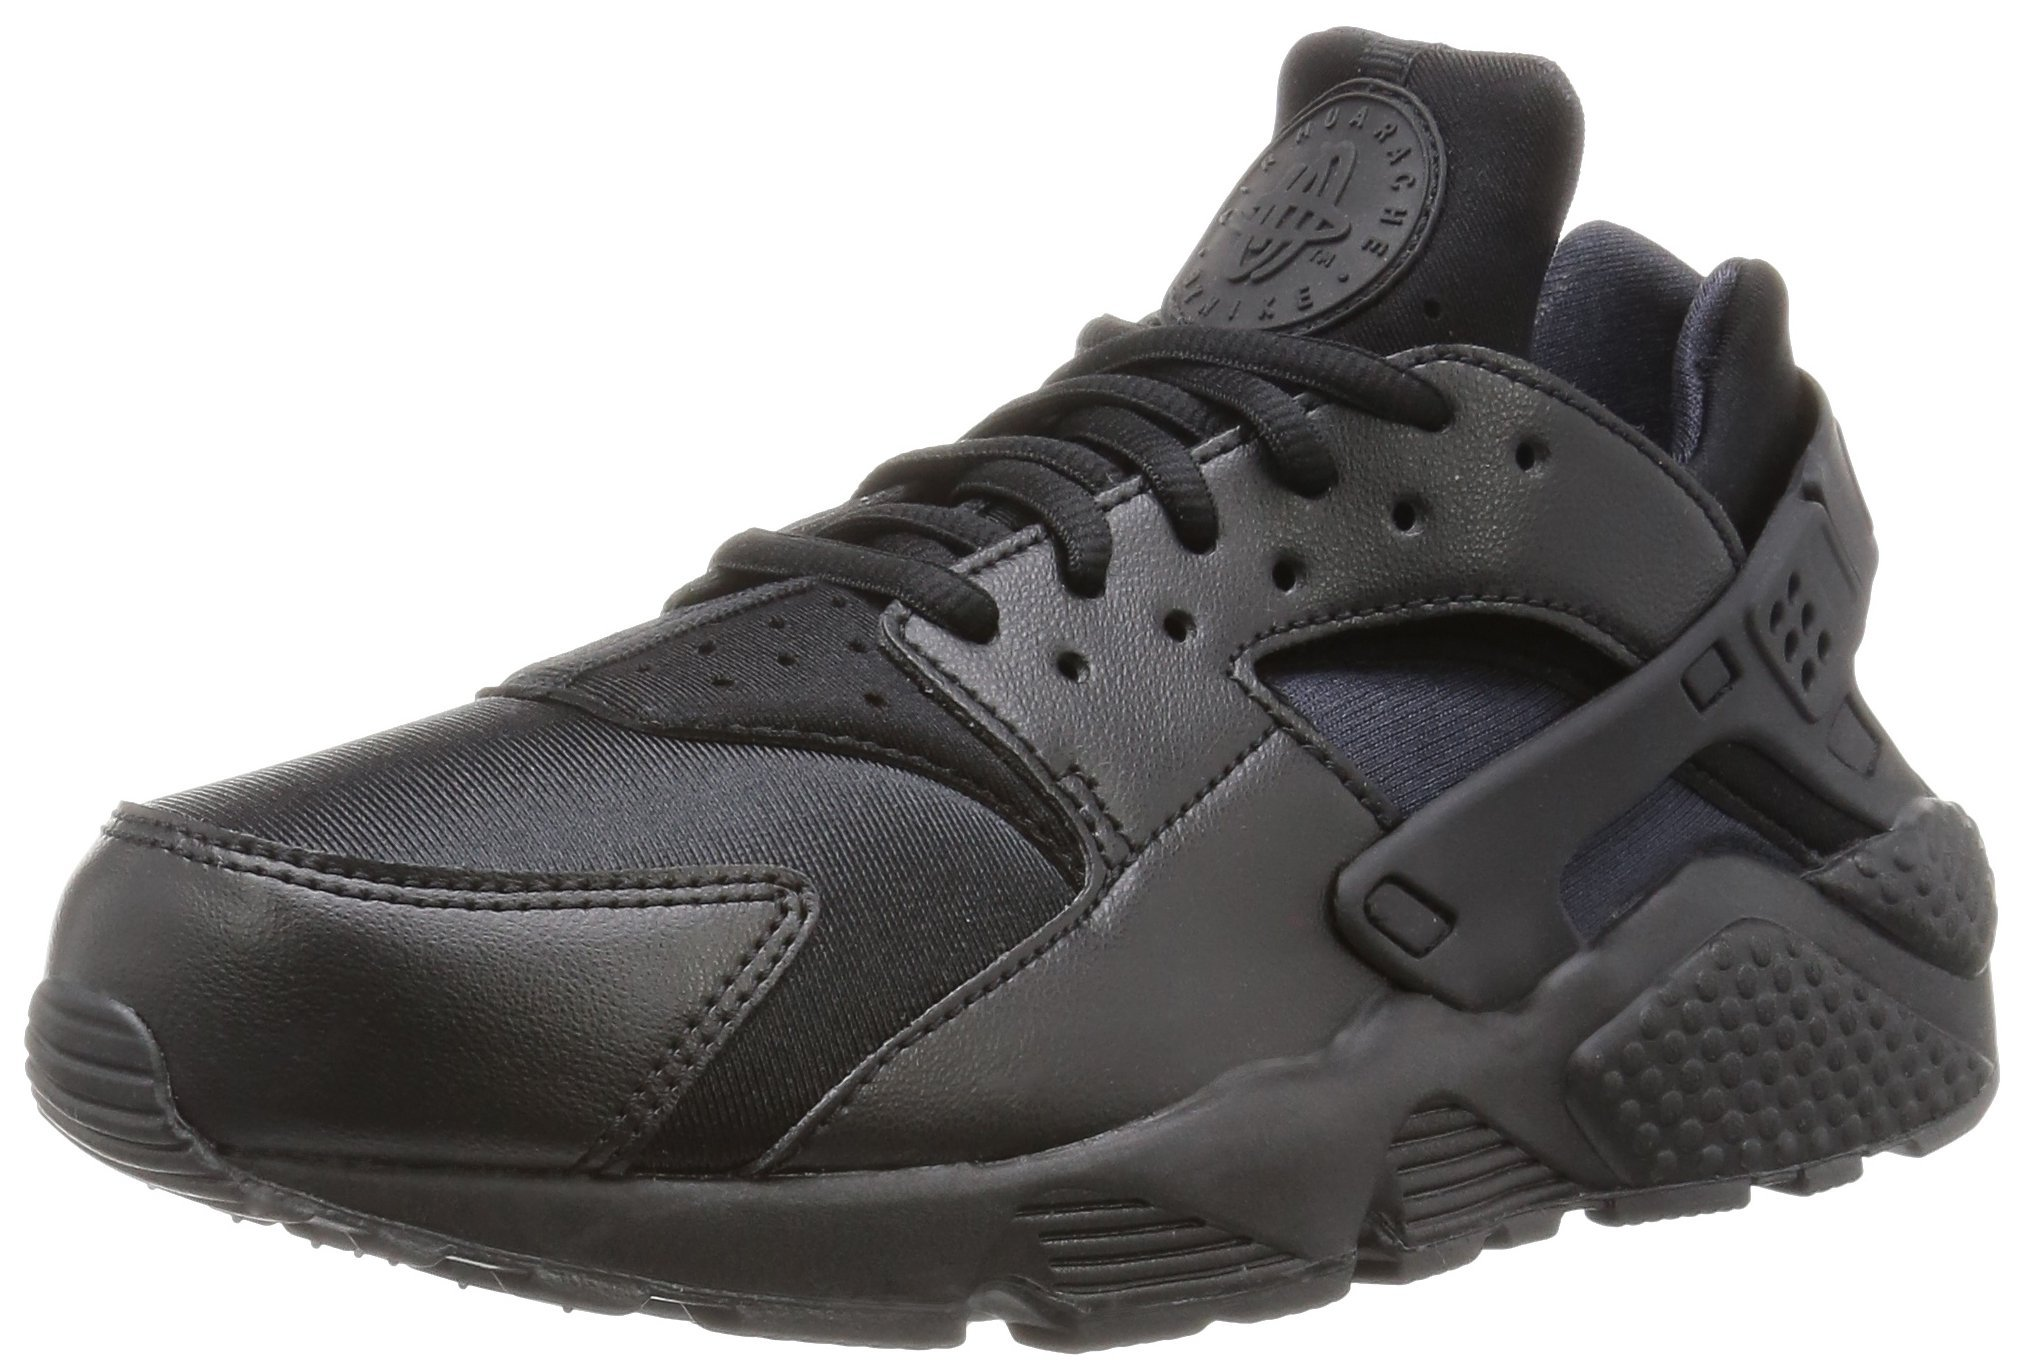 a999b28c5772 Galleon - Nike Women s Air Huarache Run Black Black Running Shoe (10 B(M)  US)